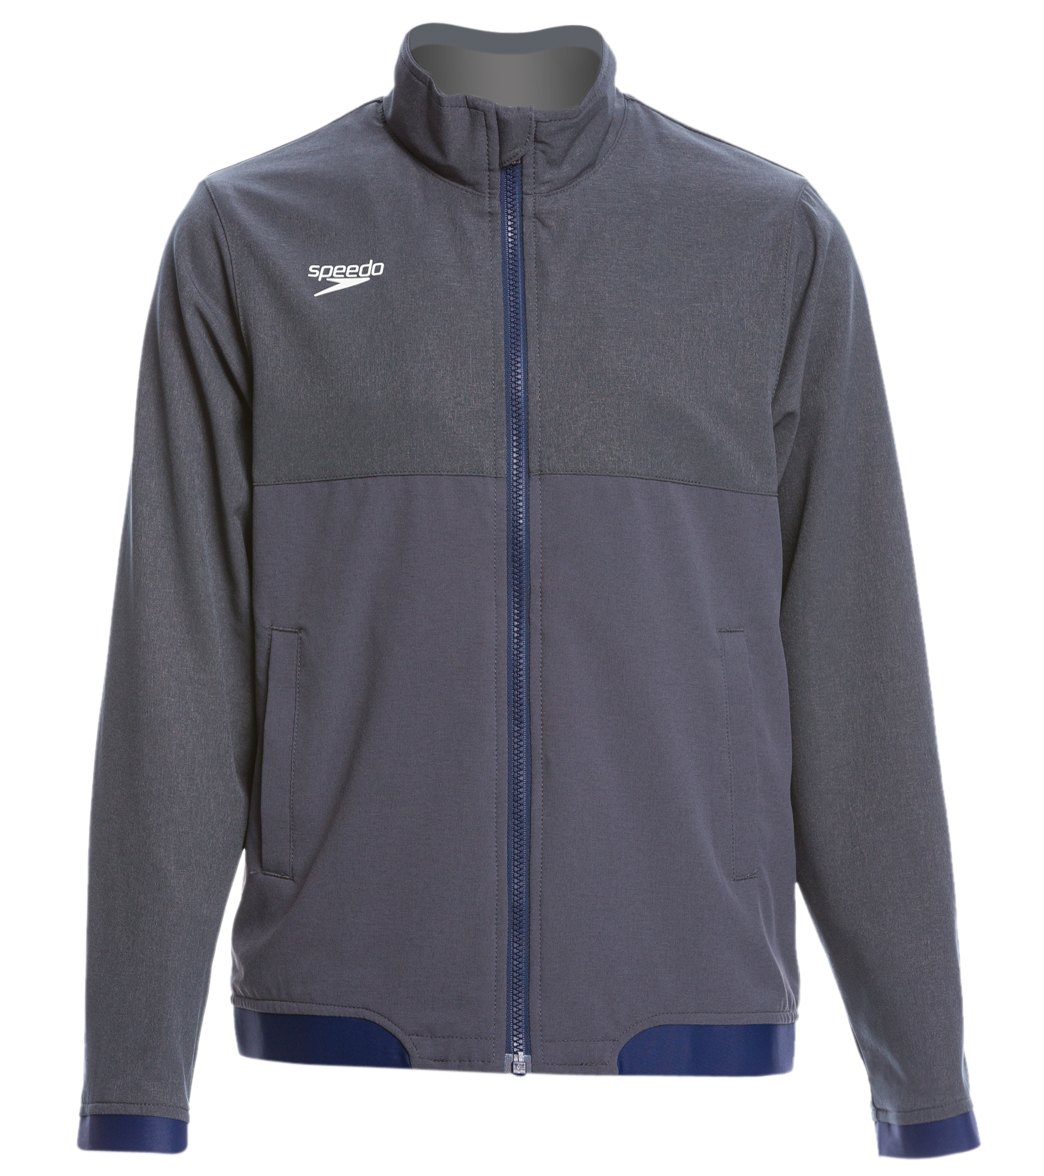 62661eaae9b Speedo Youth Tech Warm Up Jacket at SwimOutlet.com - Free Shipping